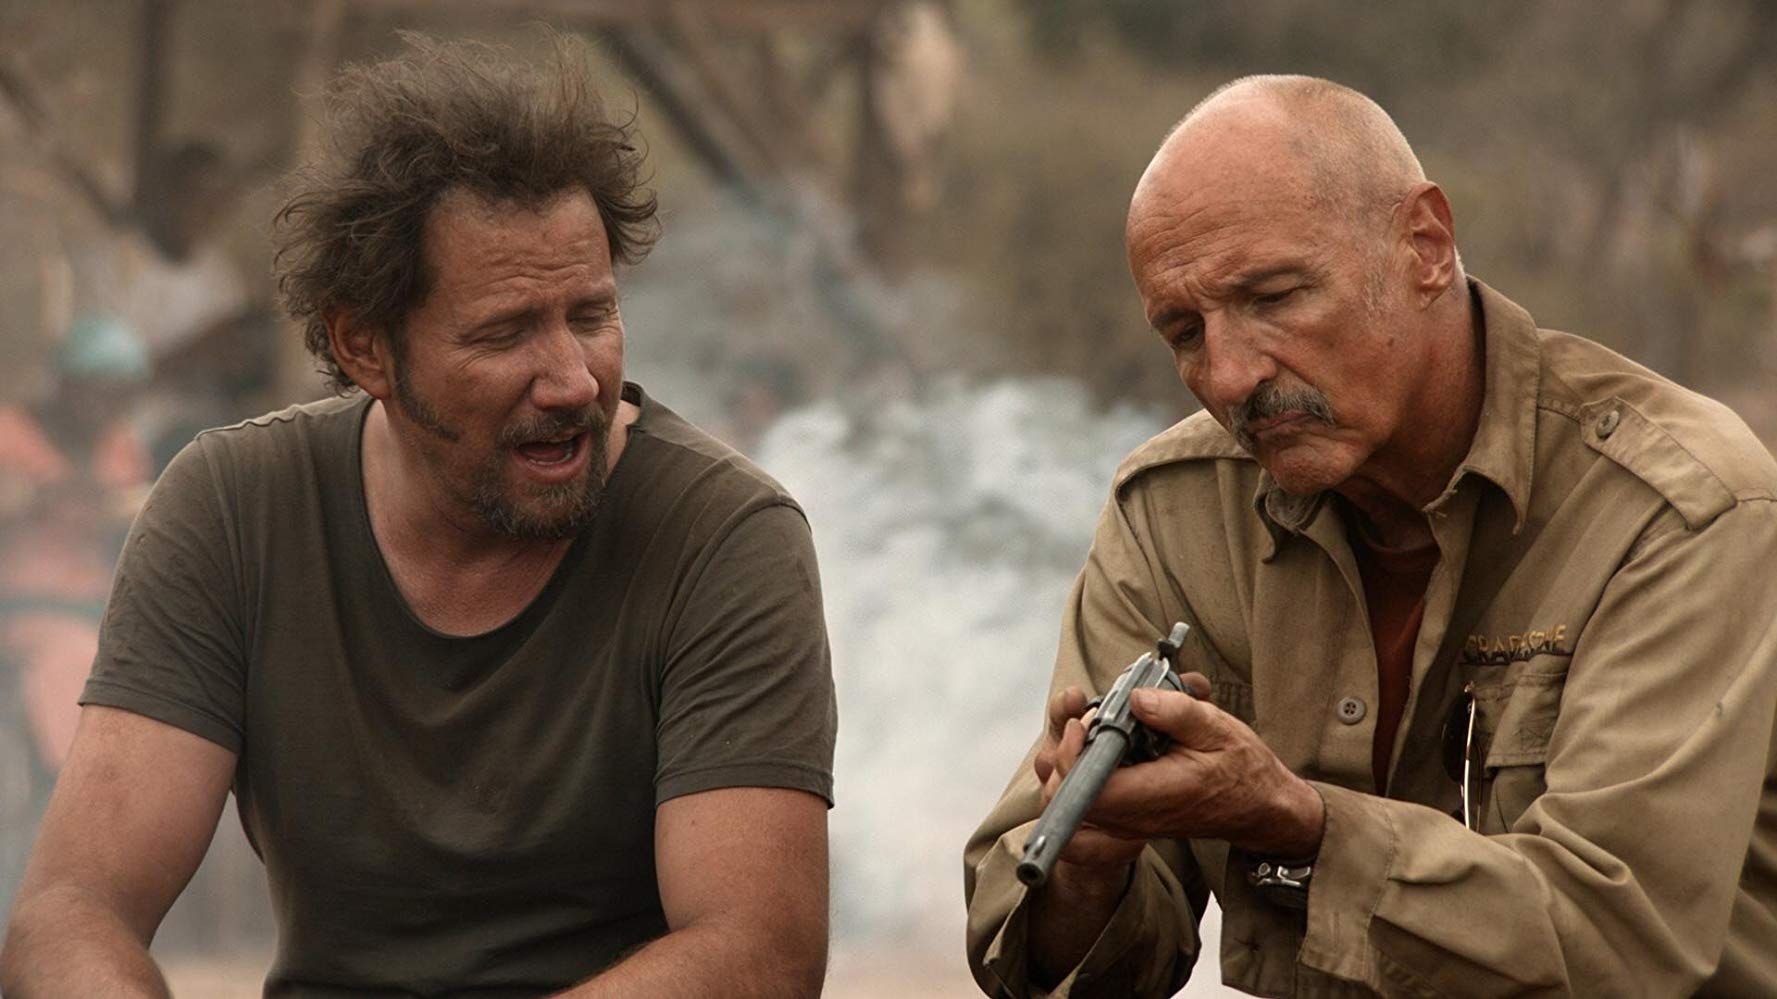 Michael Gross, Jamie Kennedy in Tremors 5. Bloodlines (2015)